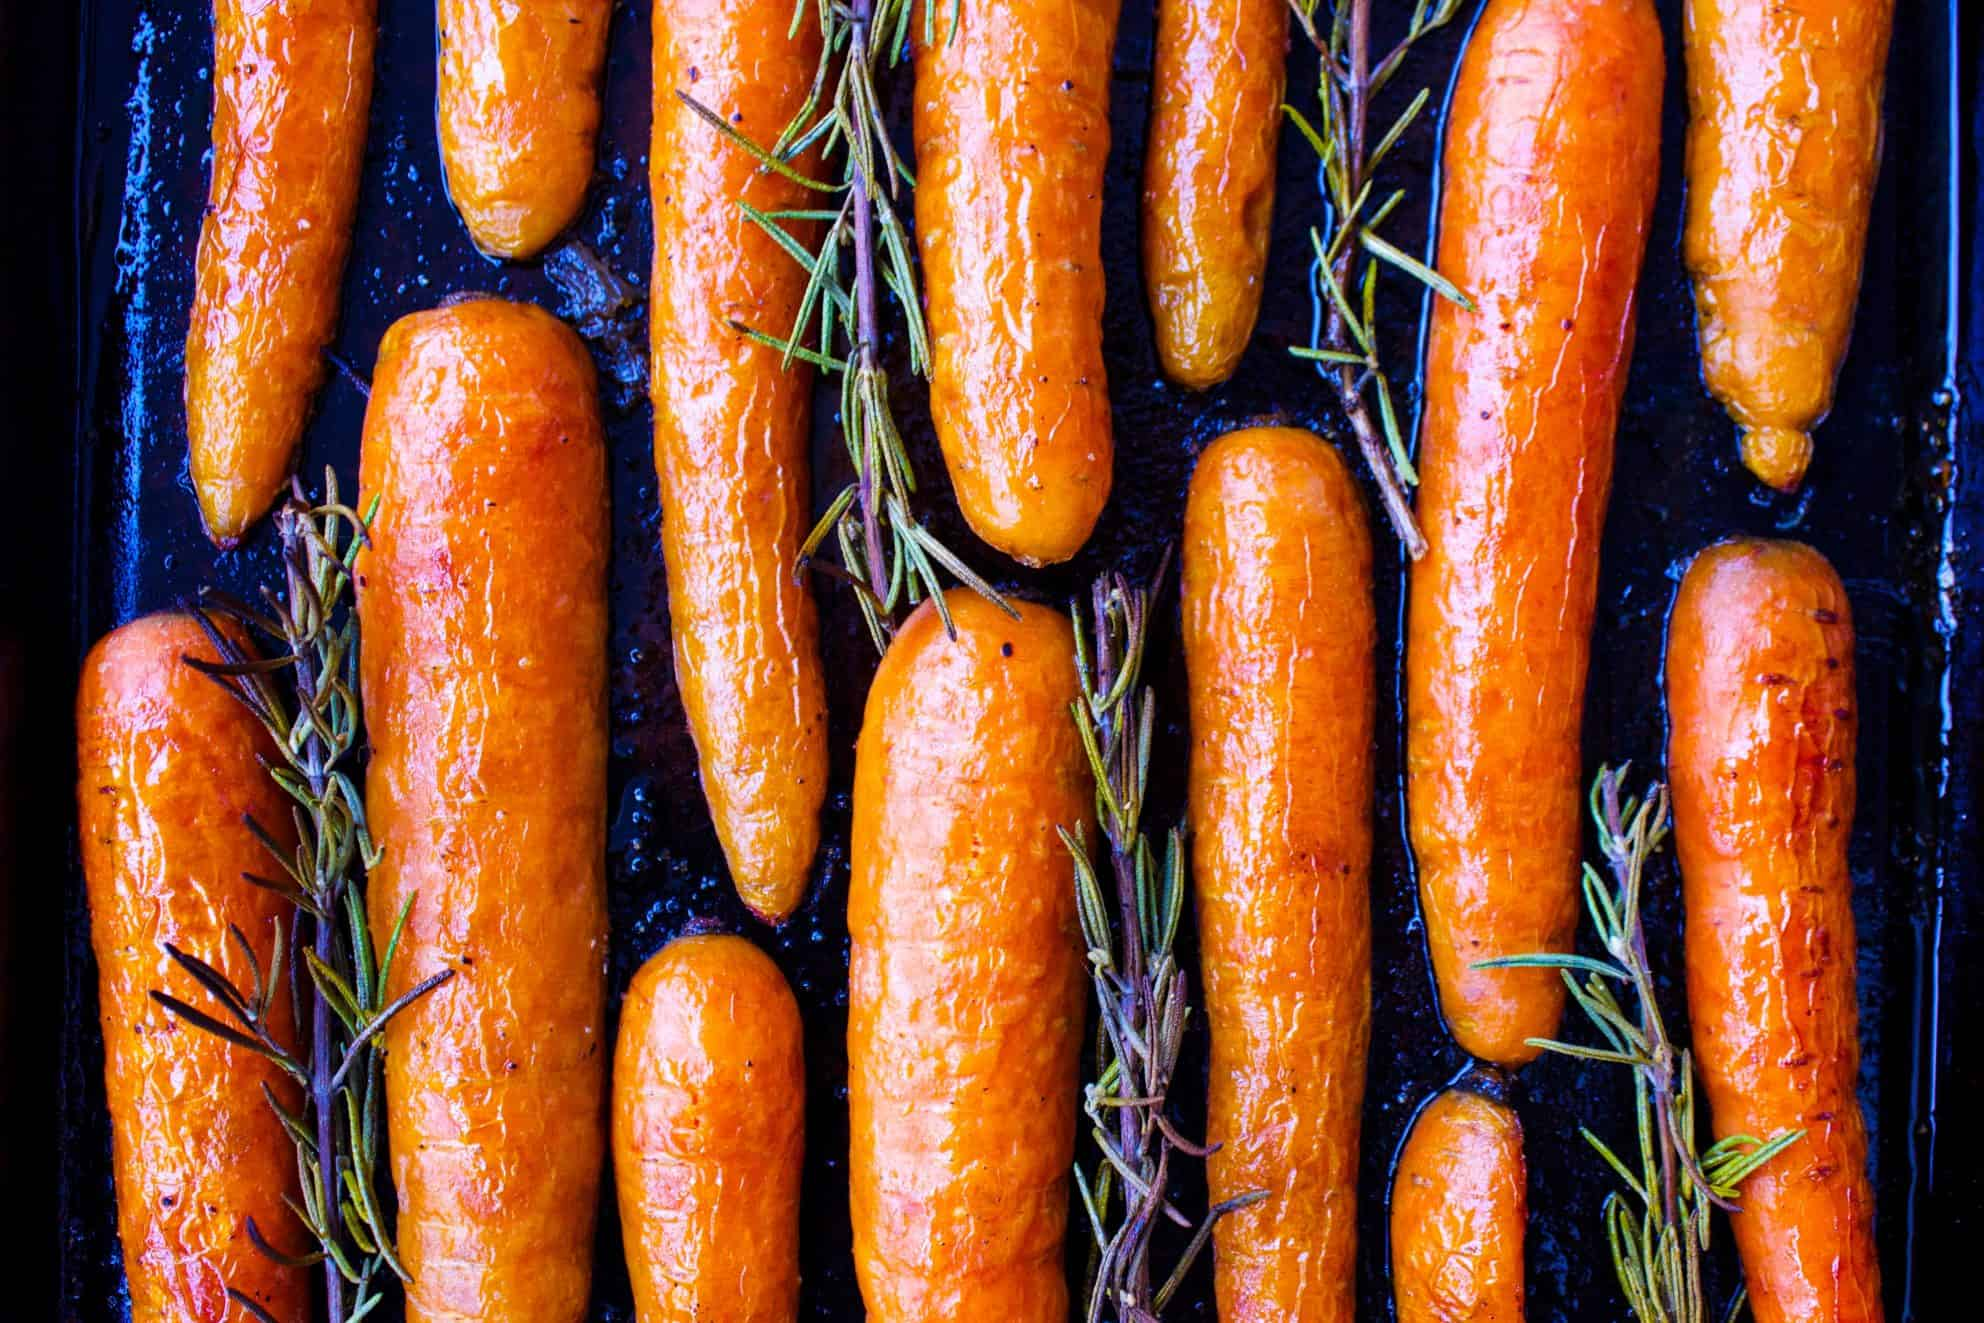 Roasted Maple Rosemary Carrots (vegan + gf)